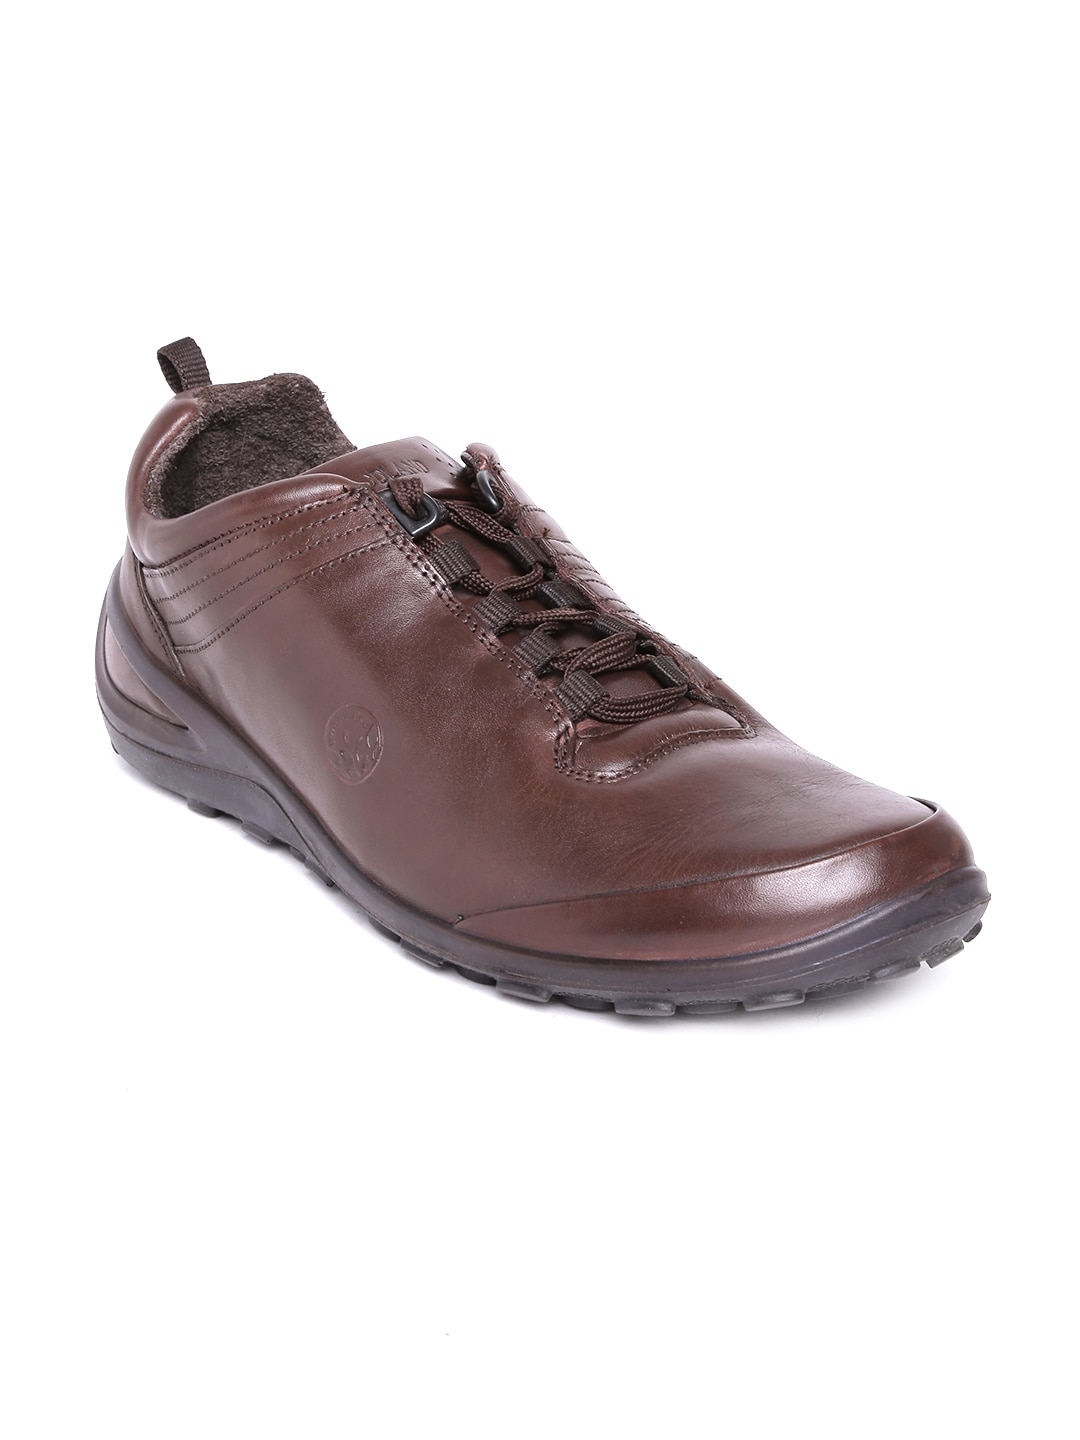 woodland shoes price list 50 offer on all models best